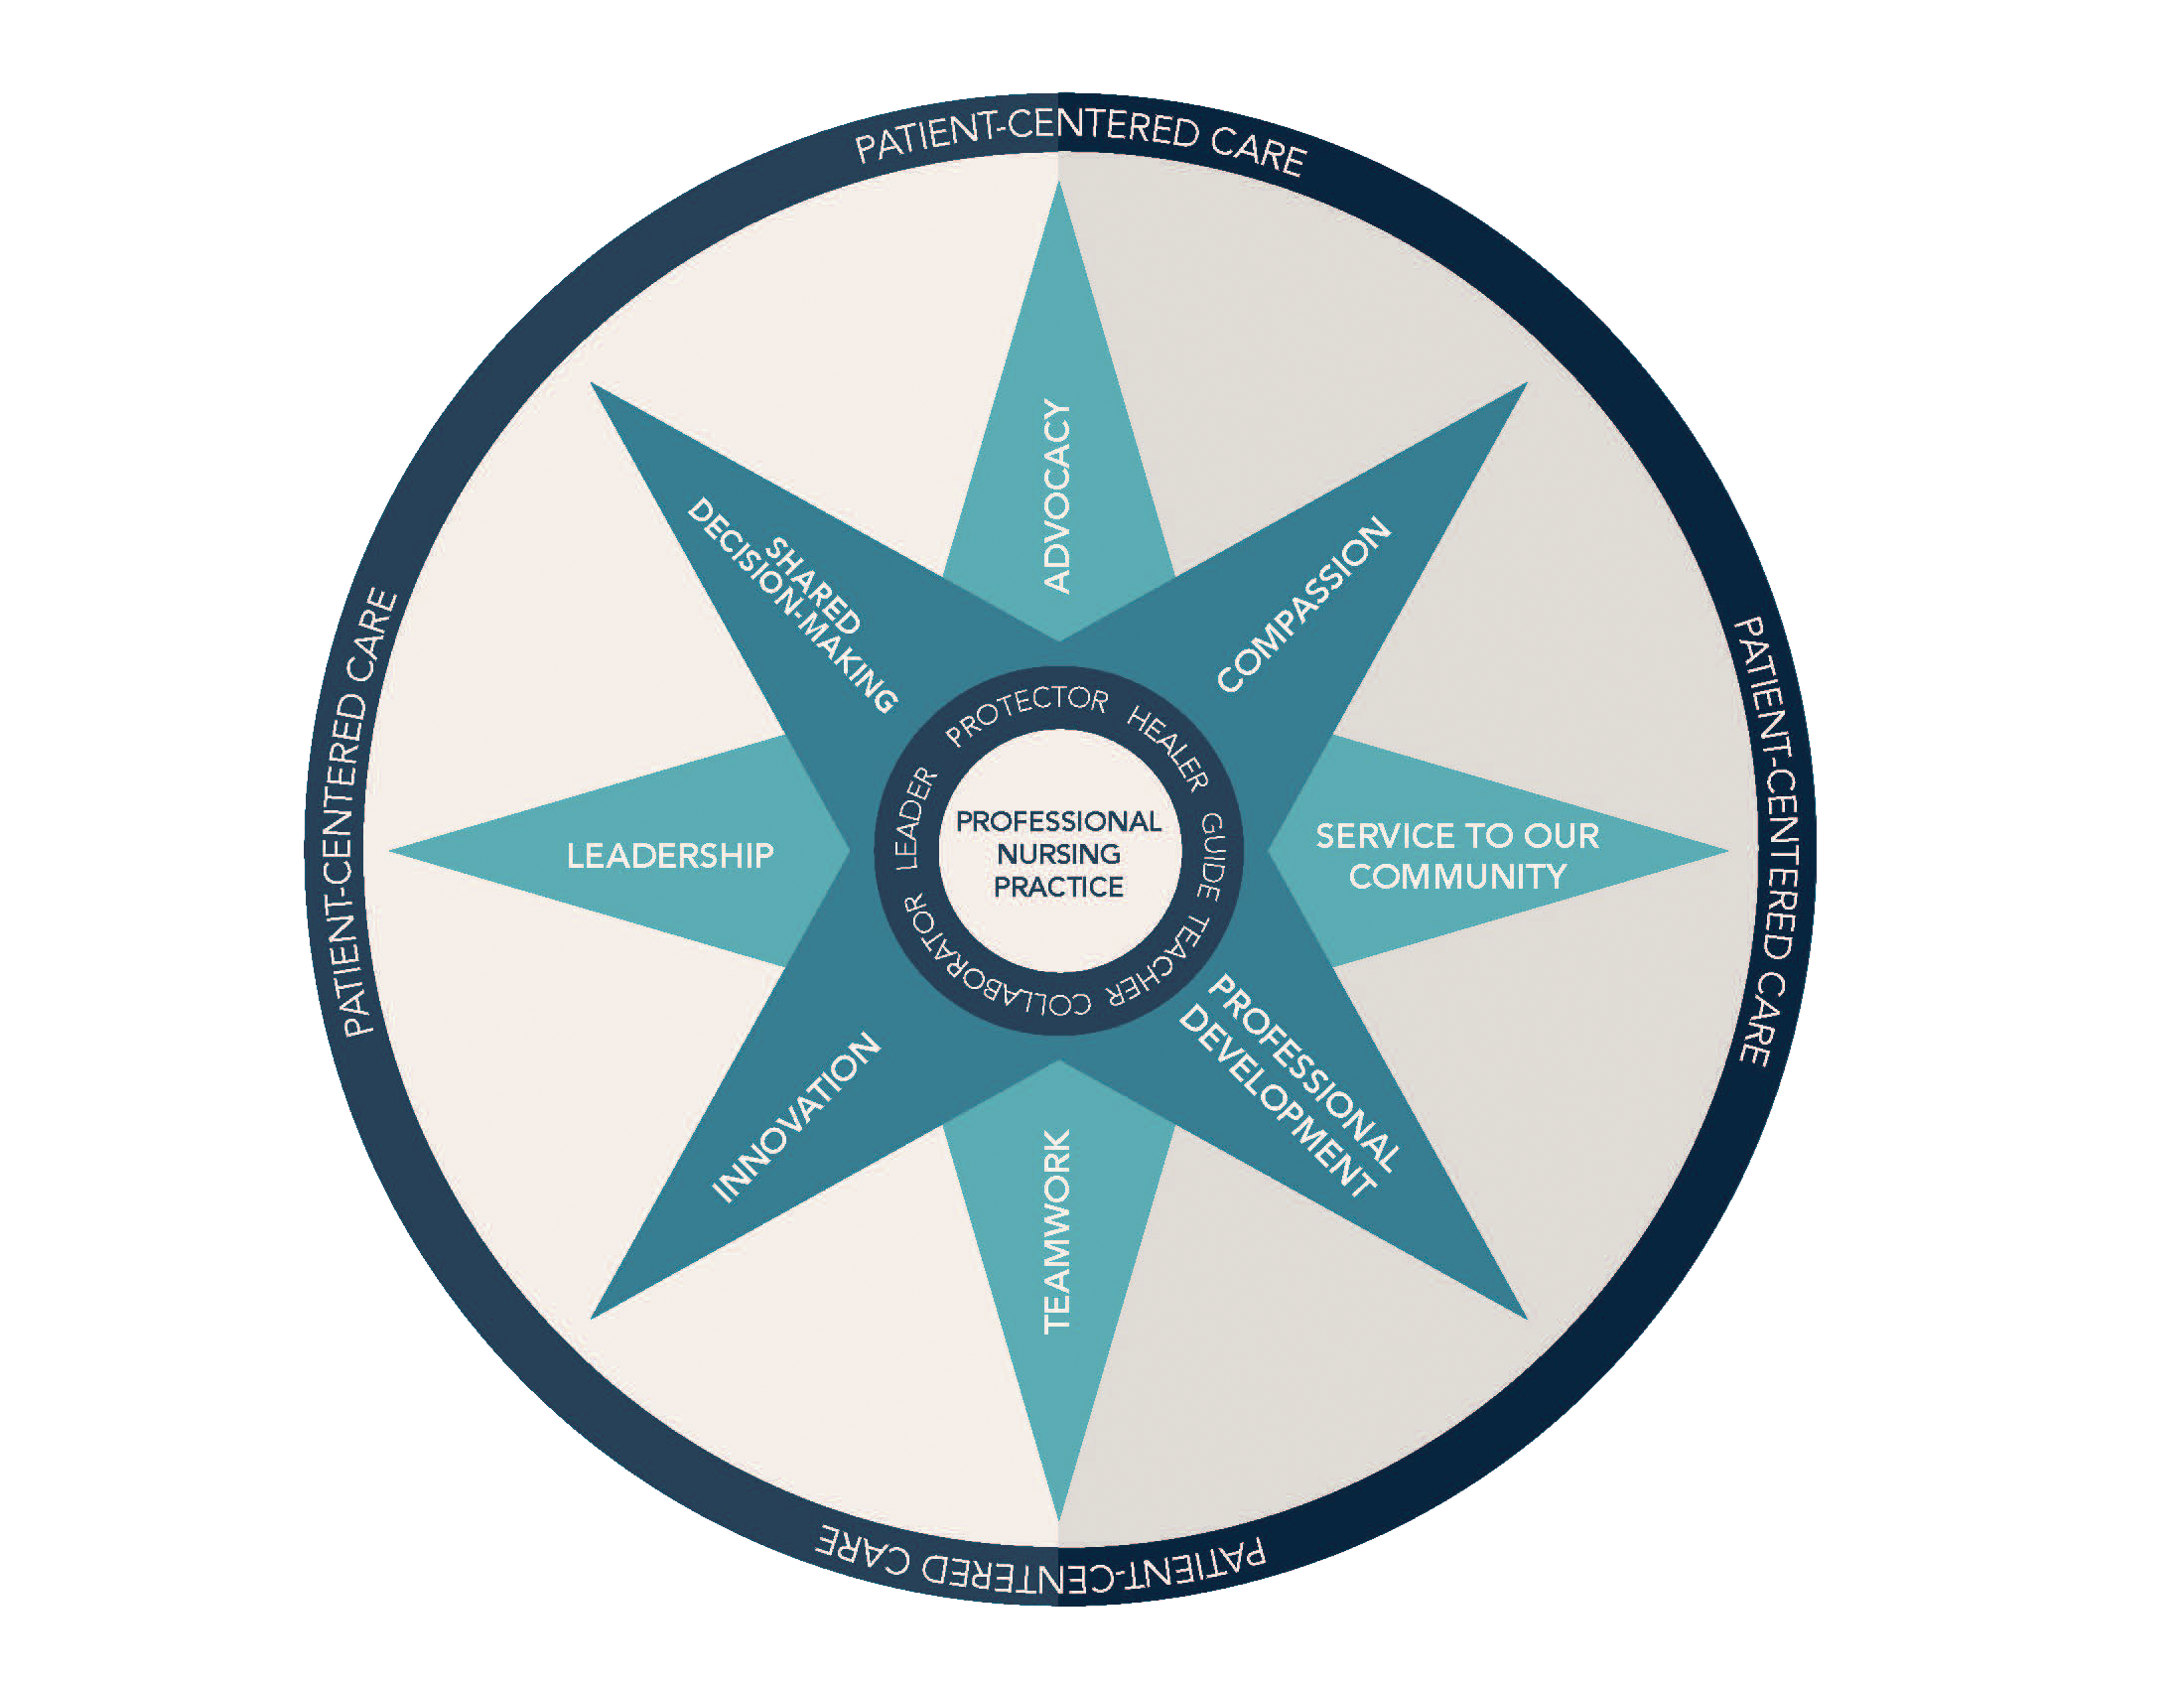 The Professional Practice Model (PPM) describes how Nursing supports the Strategic Plan at Mary Greeley Medical Center, and is consistent with Mary Greeley's mission, vision and values.